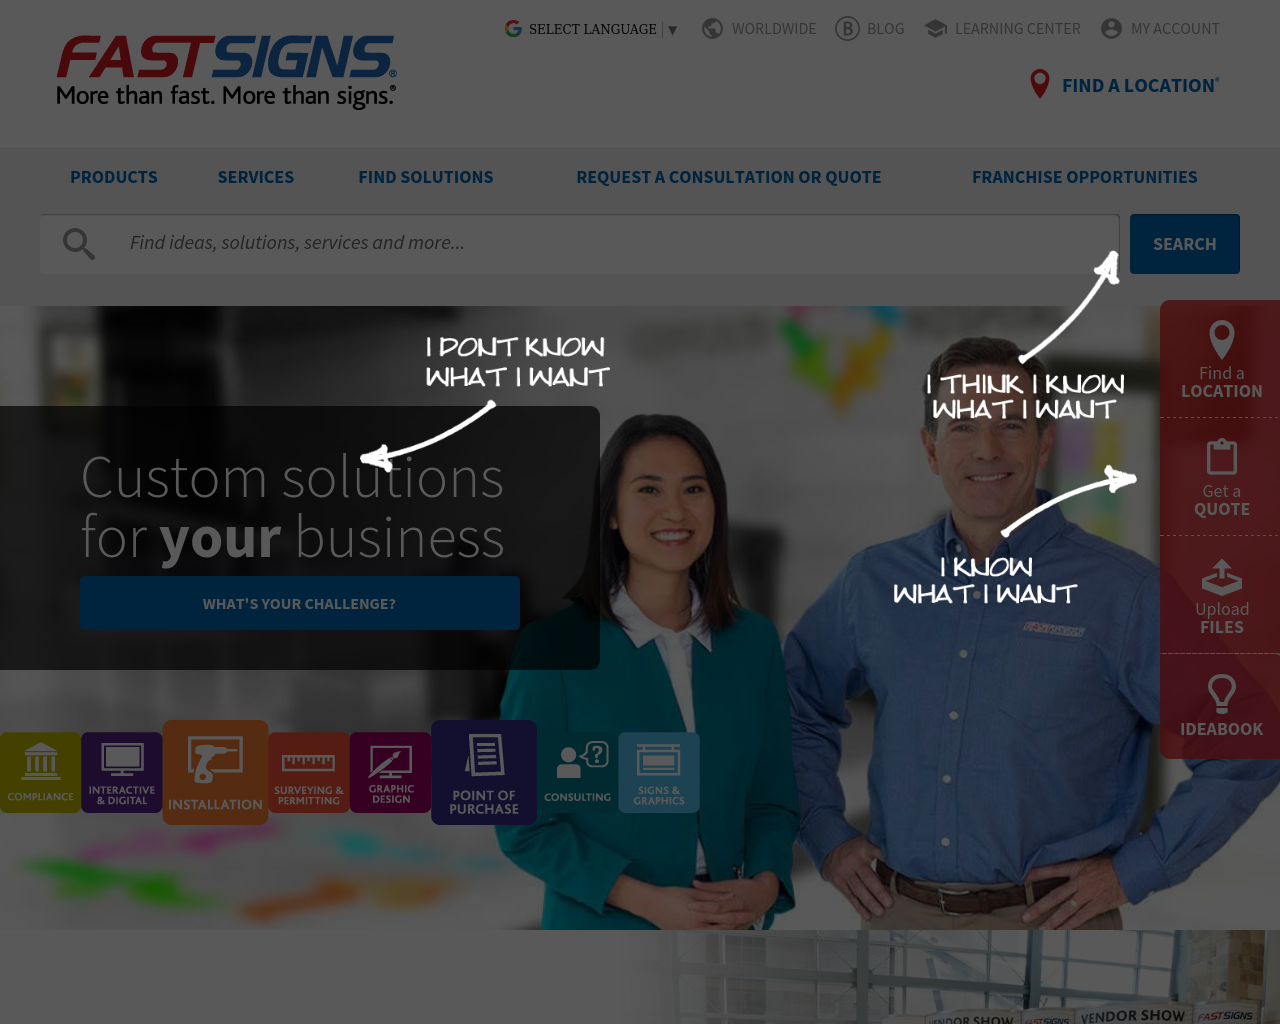 FastSigns-Advertising-Reviews-Pricing